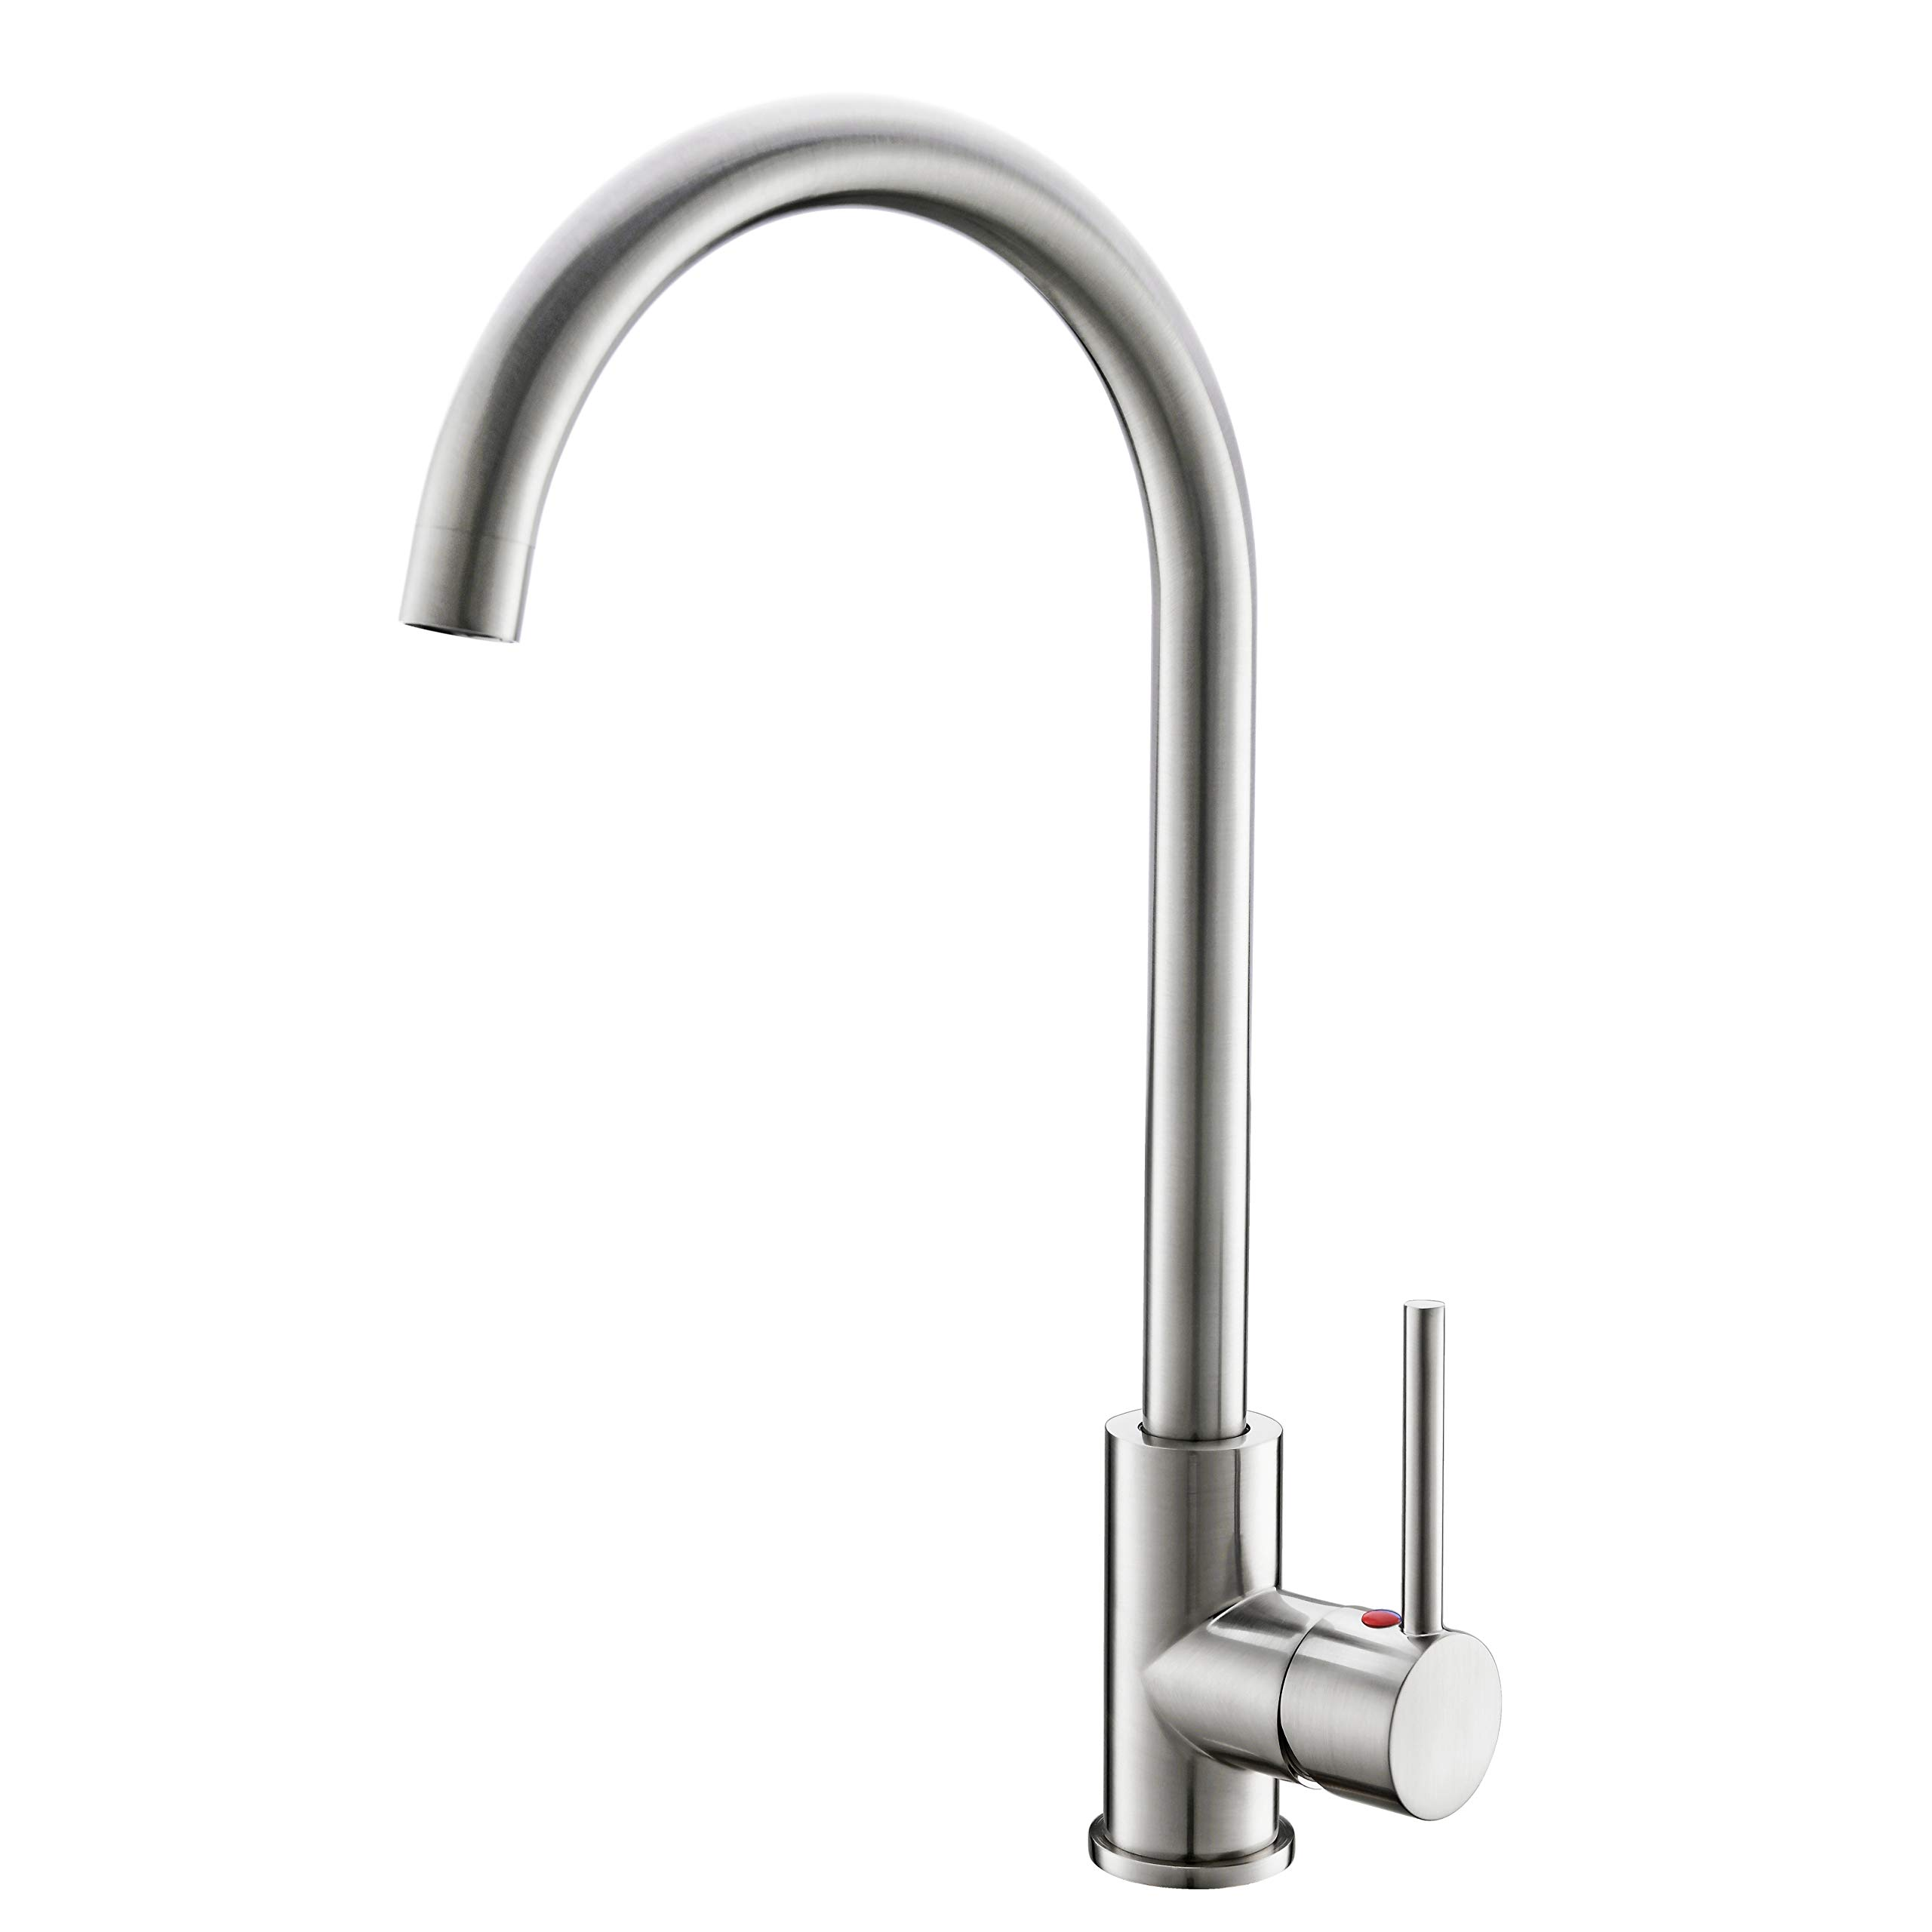 High Arch Kitchen Faucet Brushed Nickel, 360 Degree Swivel Spout Kitchen Sink Faucet Hot and Cold Water Mixer, Modern Lead-Free Commercial Bar Sink Faucet fit for 1 hole Single Handle Faucet Anti-Rust